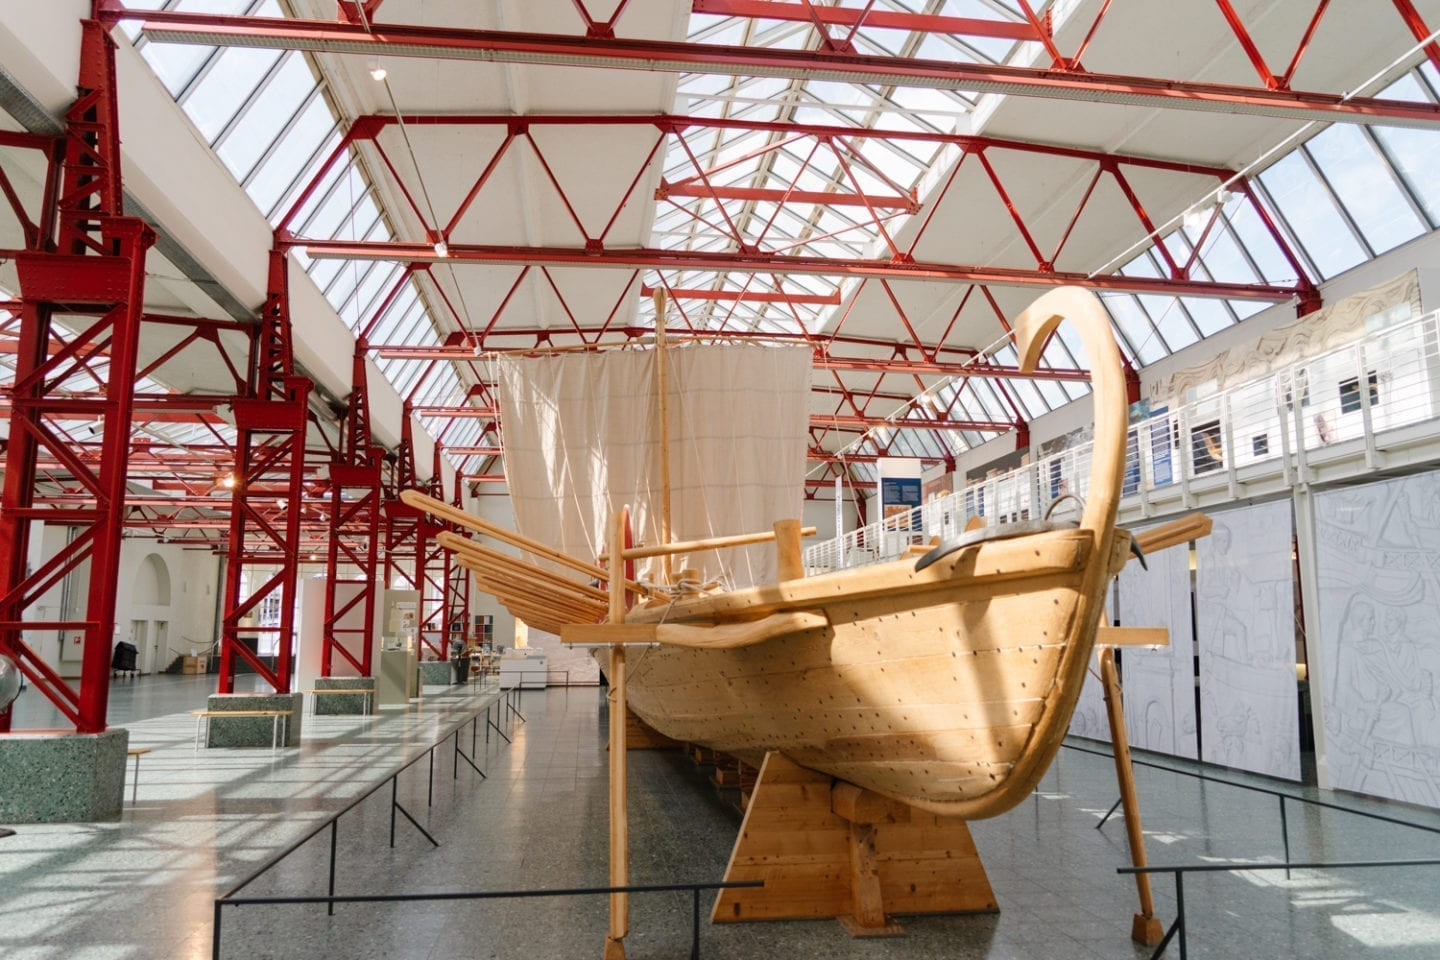 Museum of Ancient Seafaring, Mainz, Germany